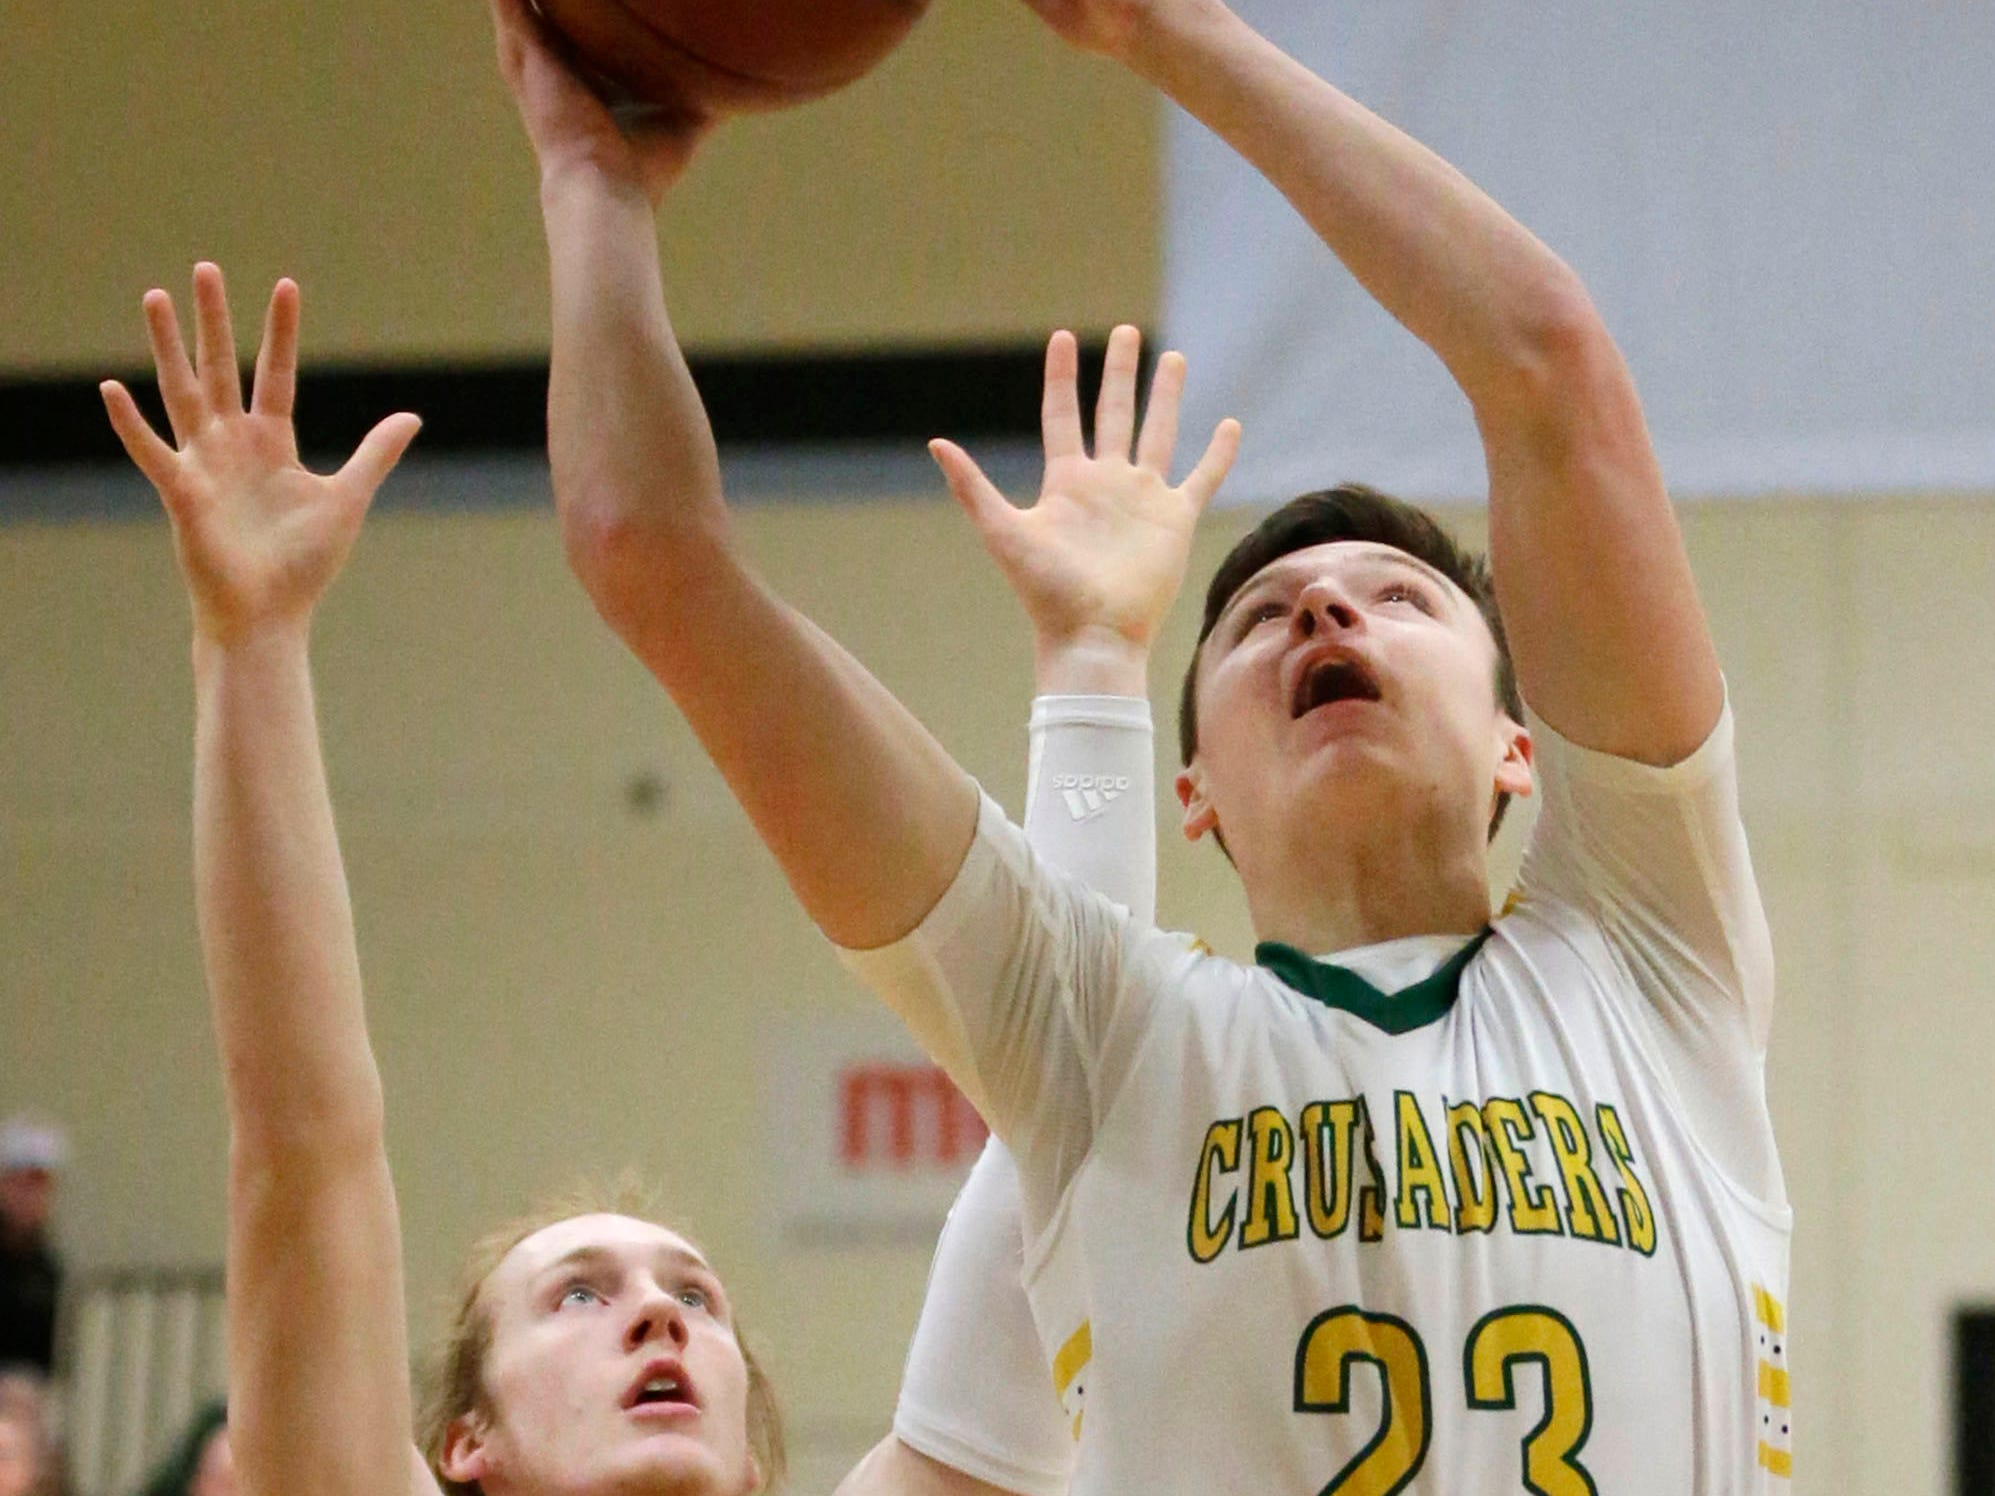 Sheboygan Lutheran's Jacob Ognacevic (23) aims a shot by Rio's Nathan Rippl (24), Saturday, March 9, 2019, in West Bend, Wis.